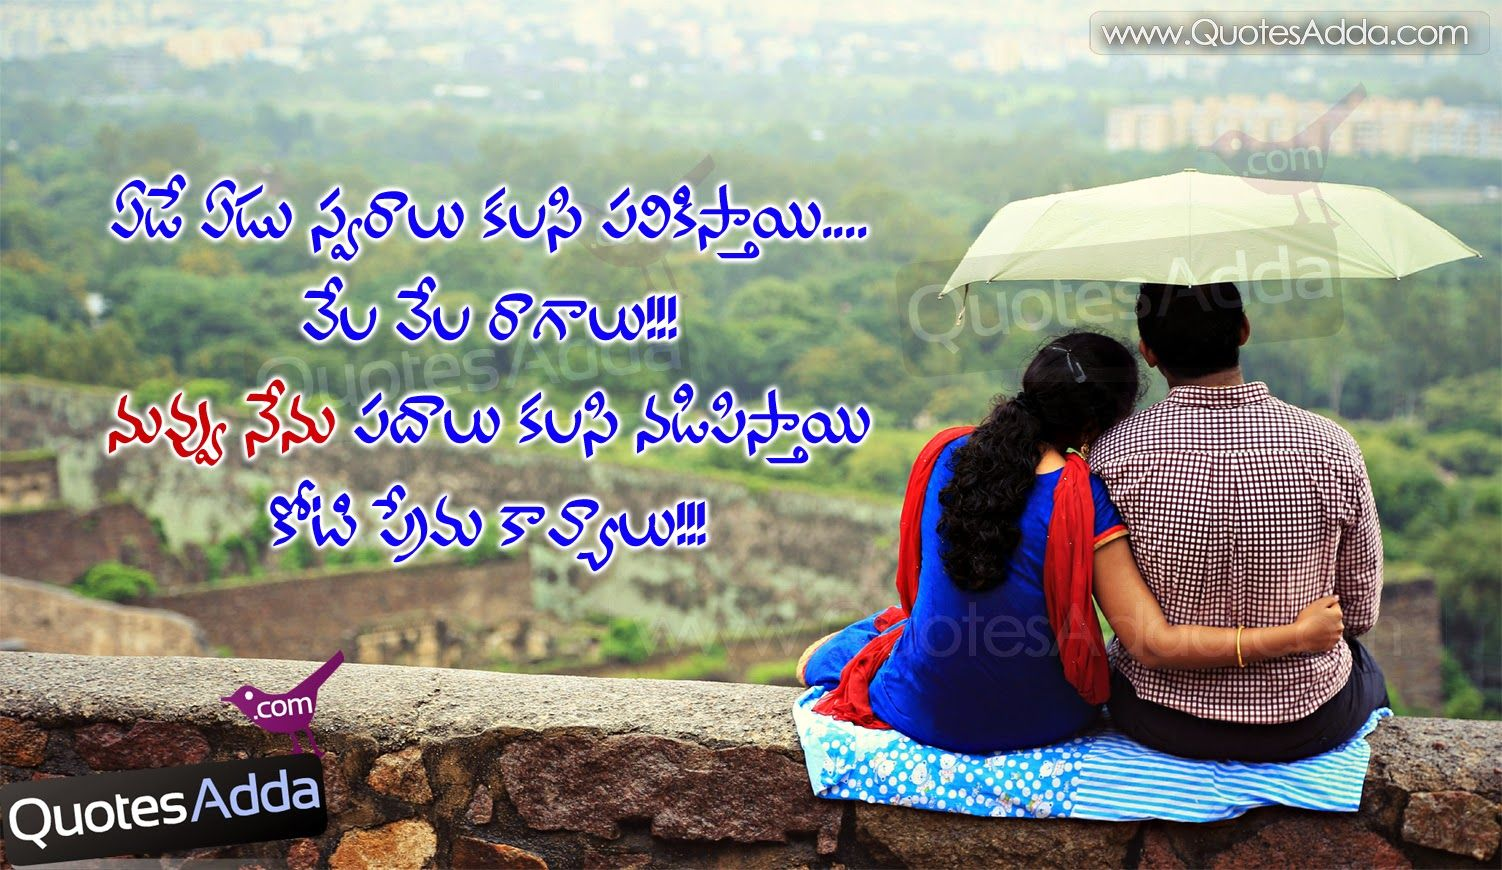 Best Love Quotes For Girlfriend In Telugu : funny love proposal quotes Best Telugu Beautiful Love Quotations ...